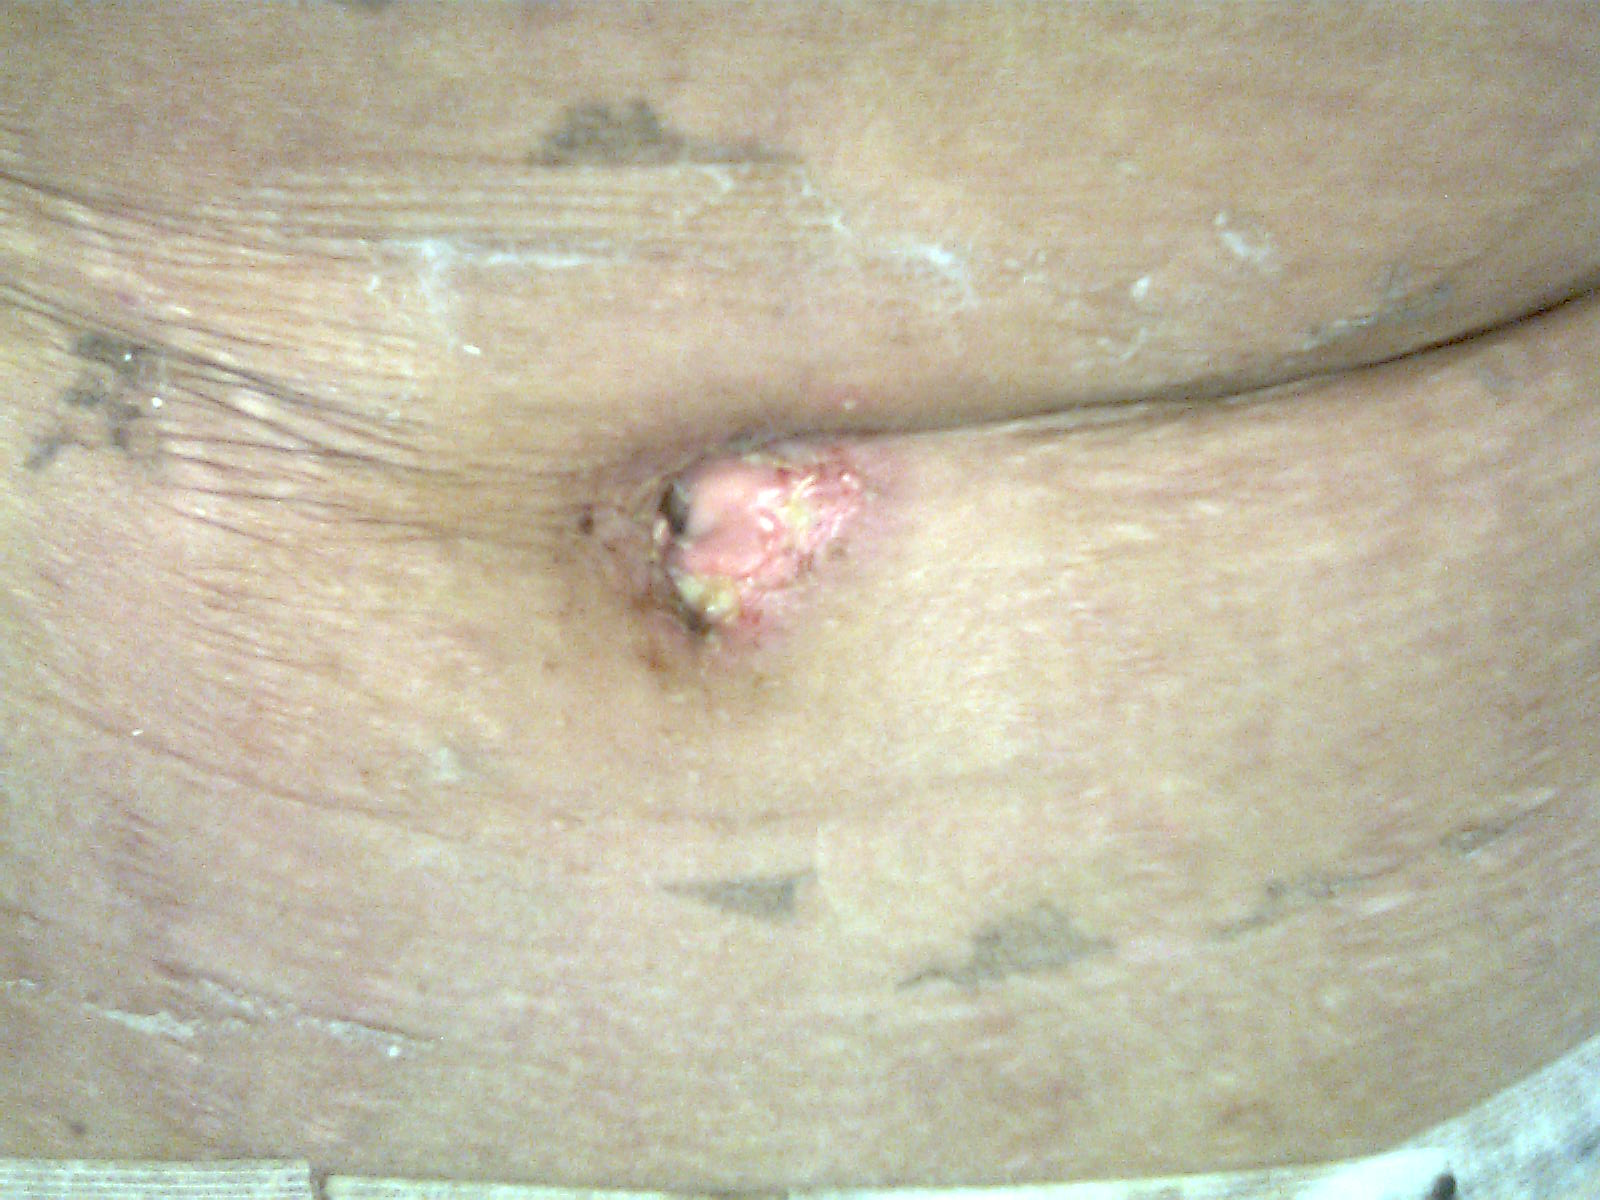 DAY 6 AFTER GOING BACK TO A&E BELLY BUTTON INFECTION